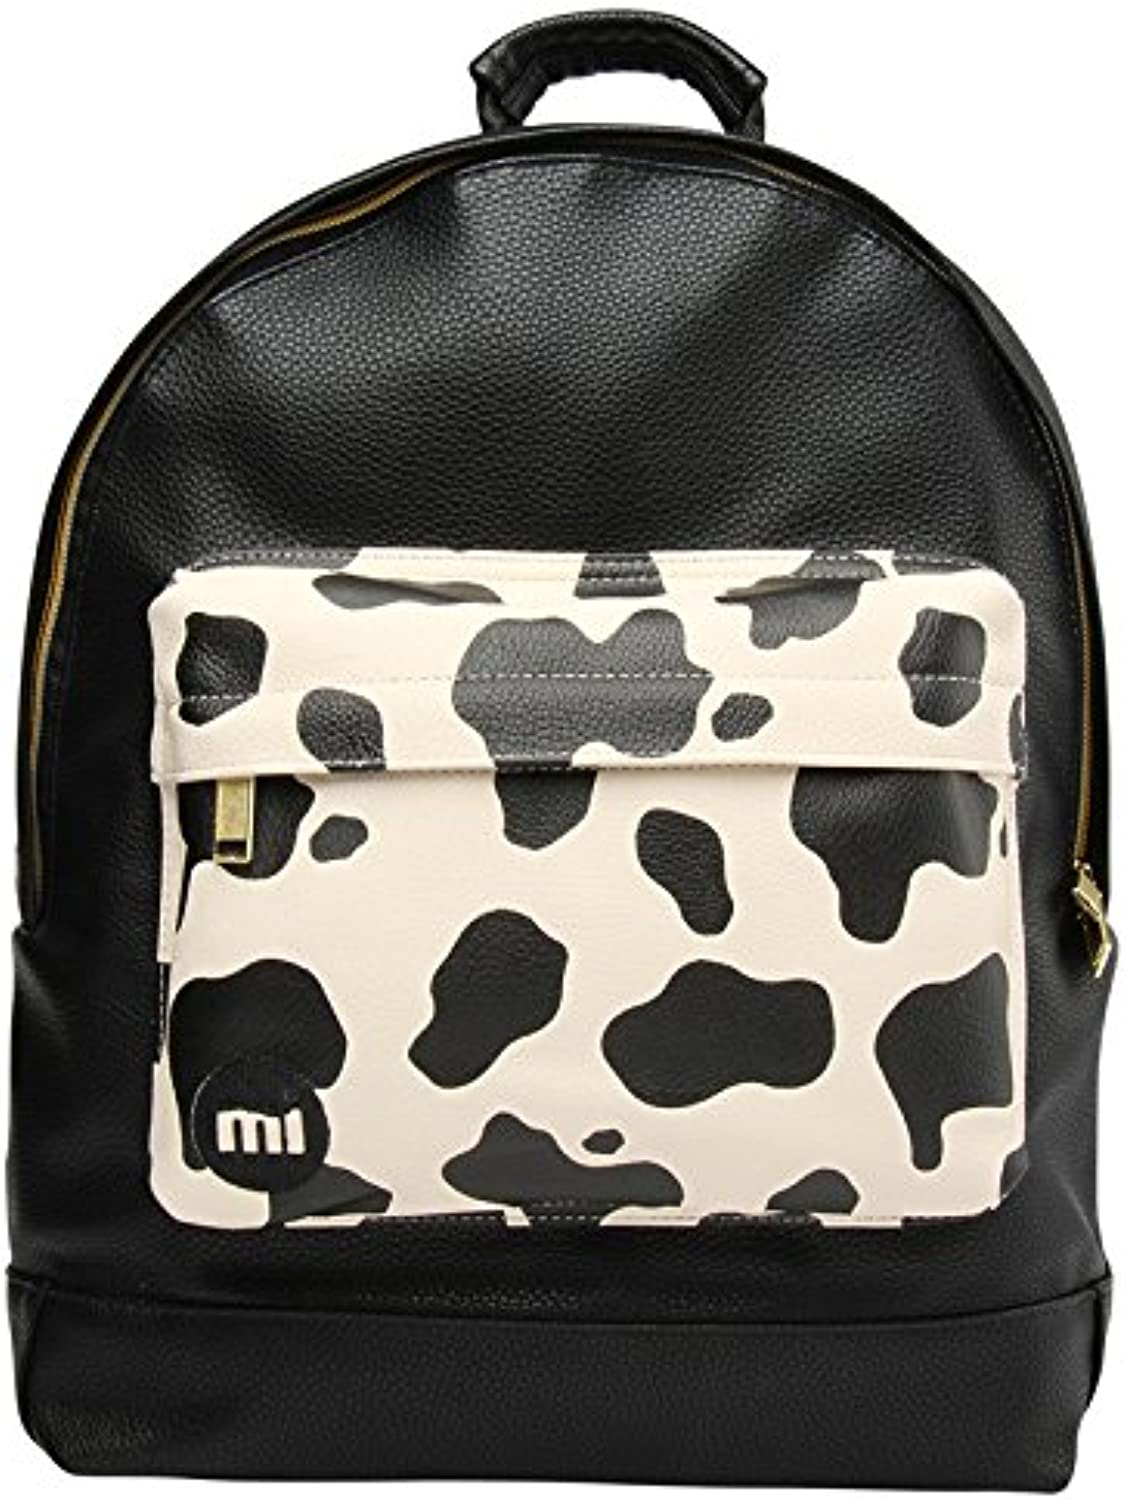 MiPac Cow Pocket Backpack  Cream Black, 17 Litre